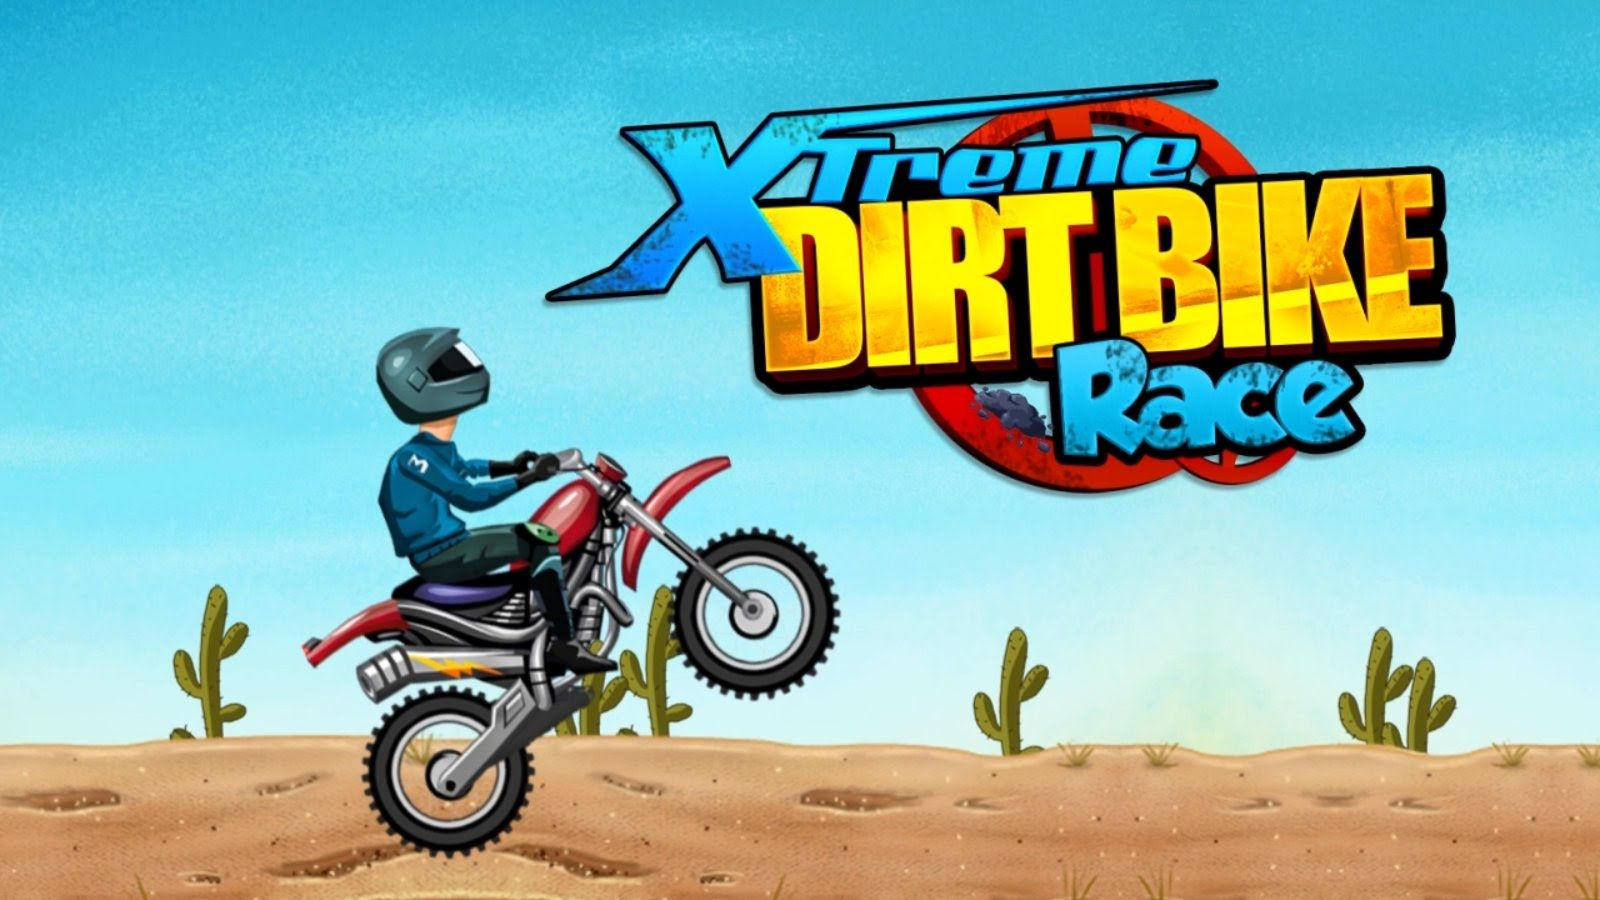 Bikerace Dirtracing Drive Your Bike Over A Crazy Dirt Bike Track With Exciting Level And Amazing Hd Graphics Racing Bikes Dirt Bike Track Dirt Bike Racing